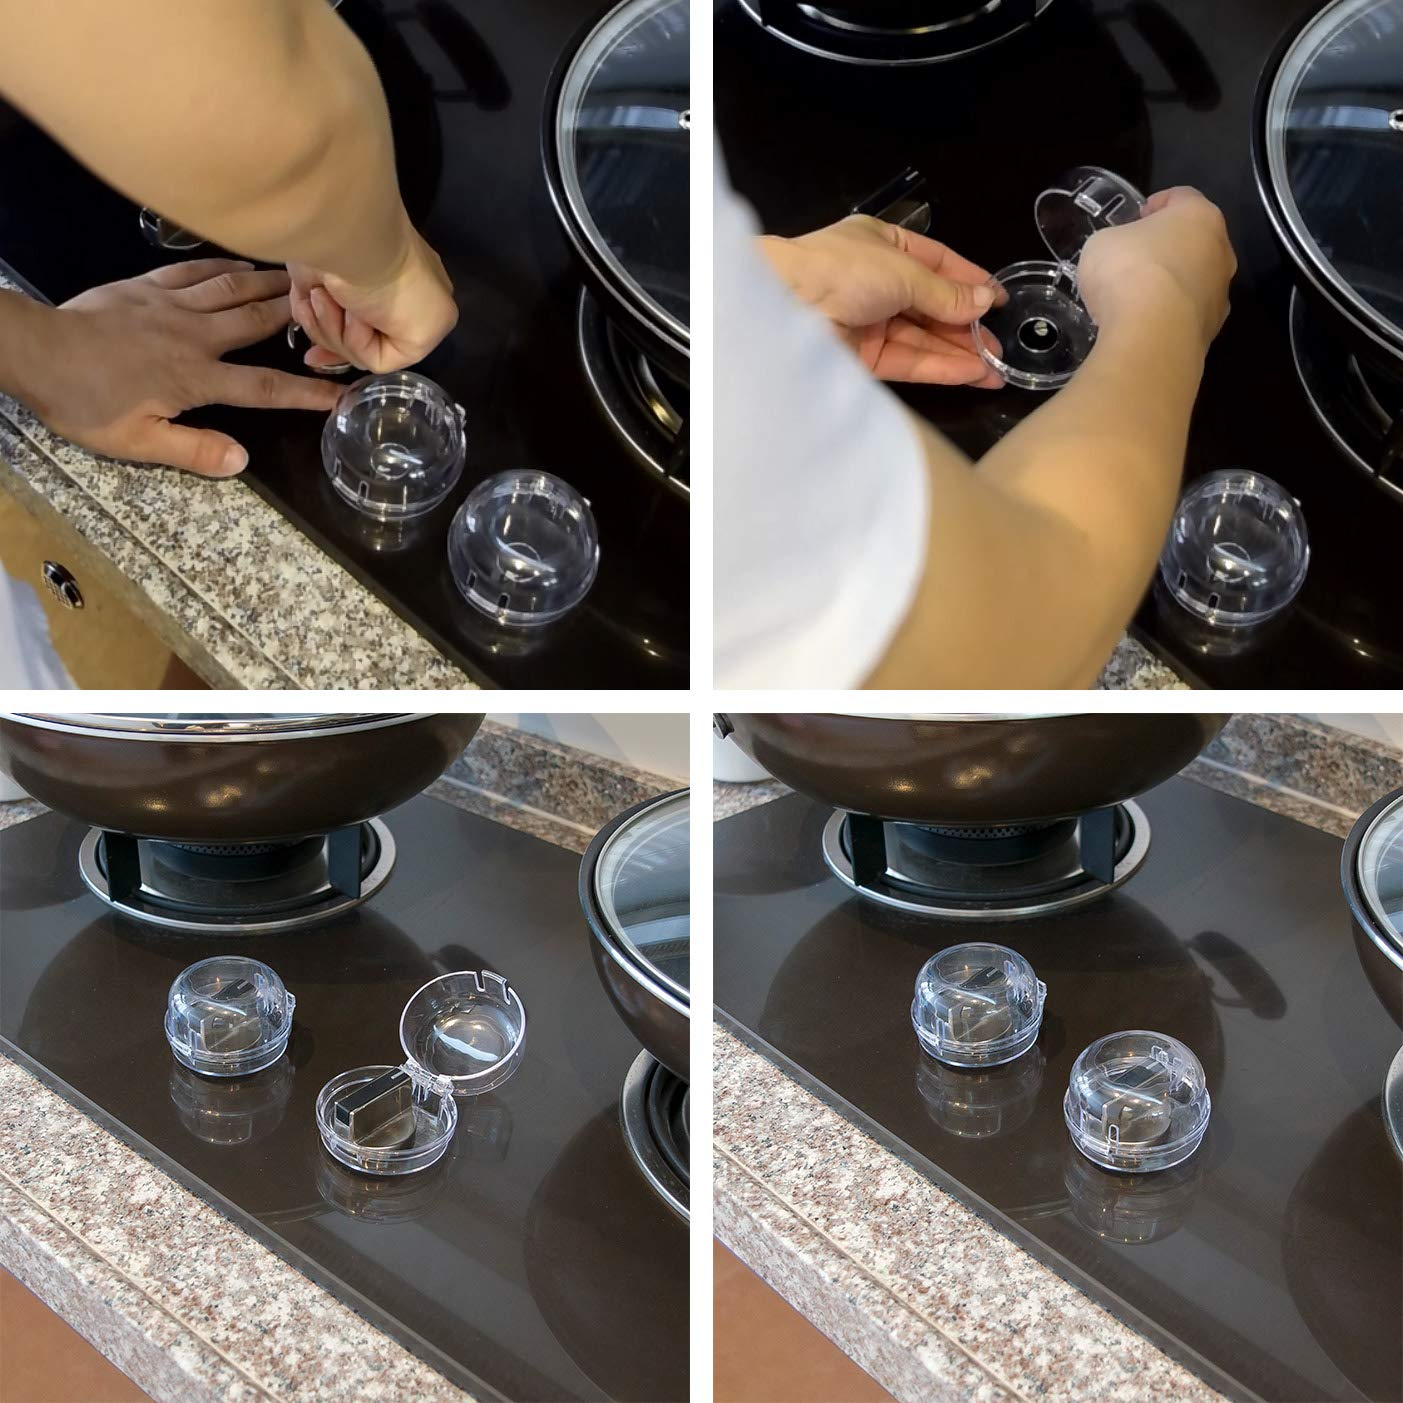 Safety-Novelty Child-Proof Stove Knob Covers - Small 2019 Upgraded Heat Resistant Model | Please Measure Your Knob First | Baby & Kids Kitchen Design | Easy Set-up Clear View by Safety Novelty (Image #7)